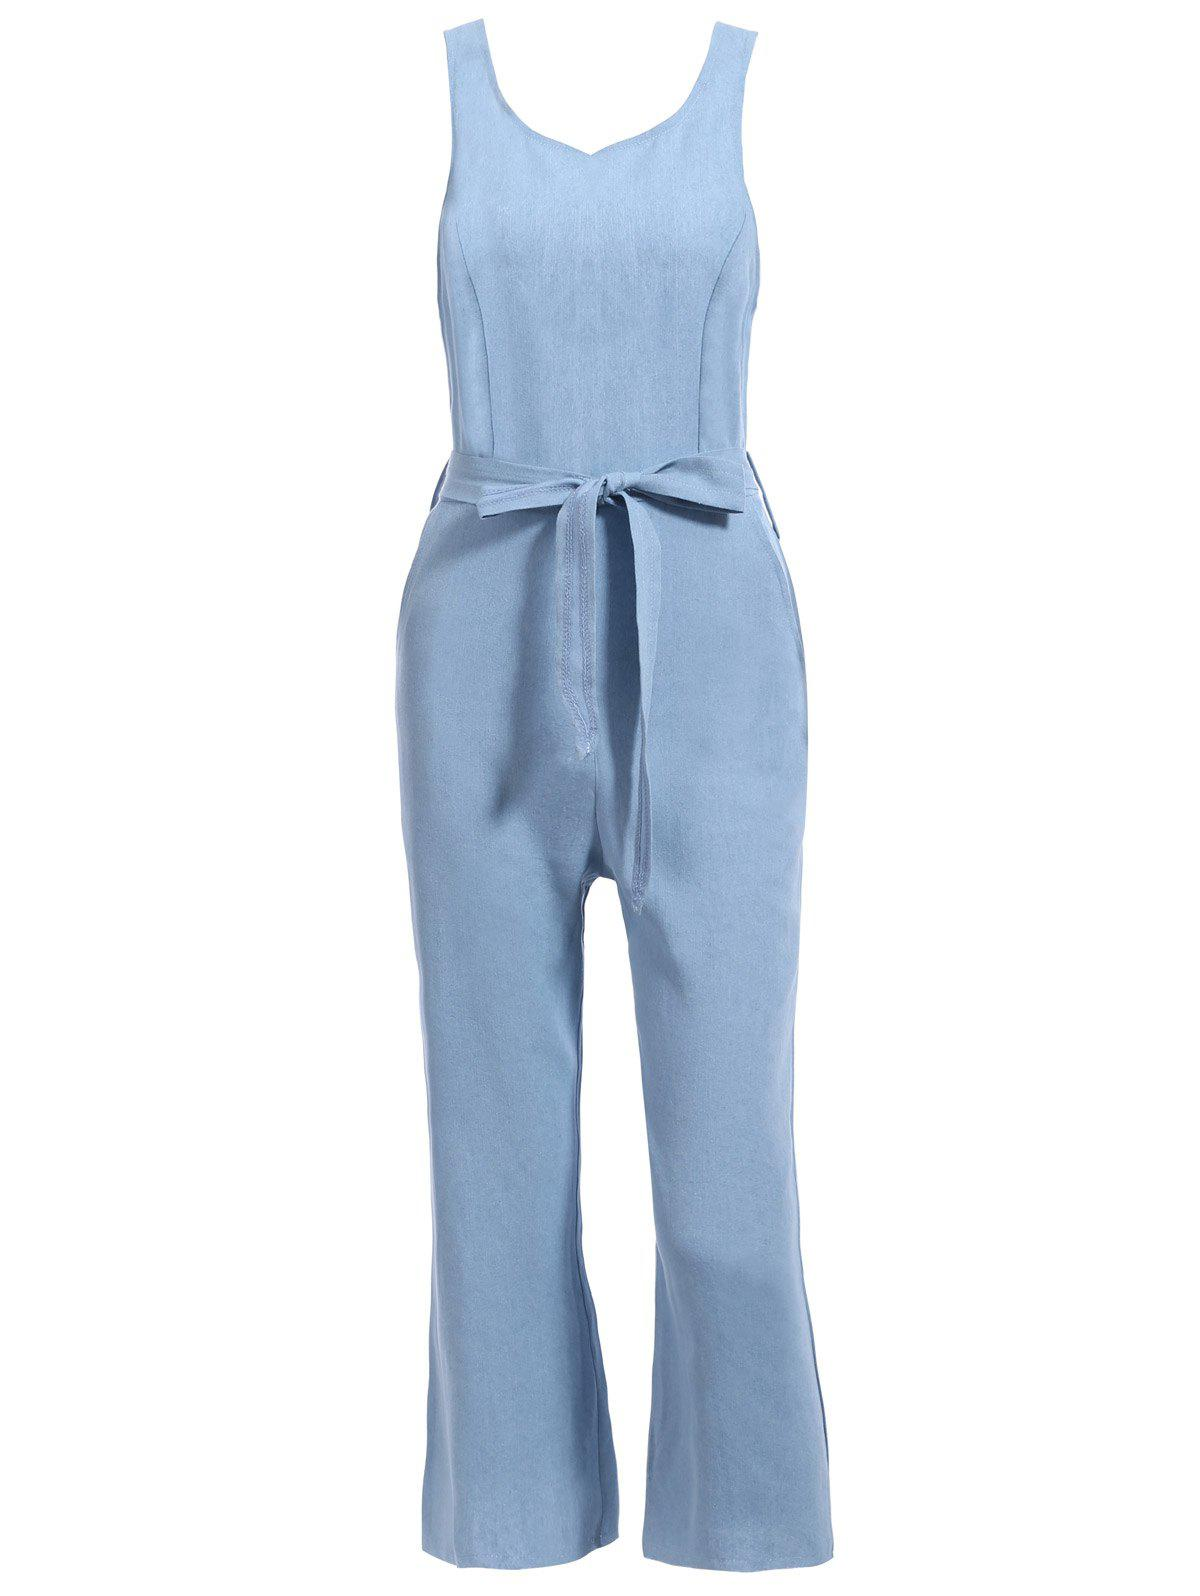 Trendy Round Neck Sleeveless Denim Jumpsuit For Women - DENIM BLUE M